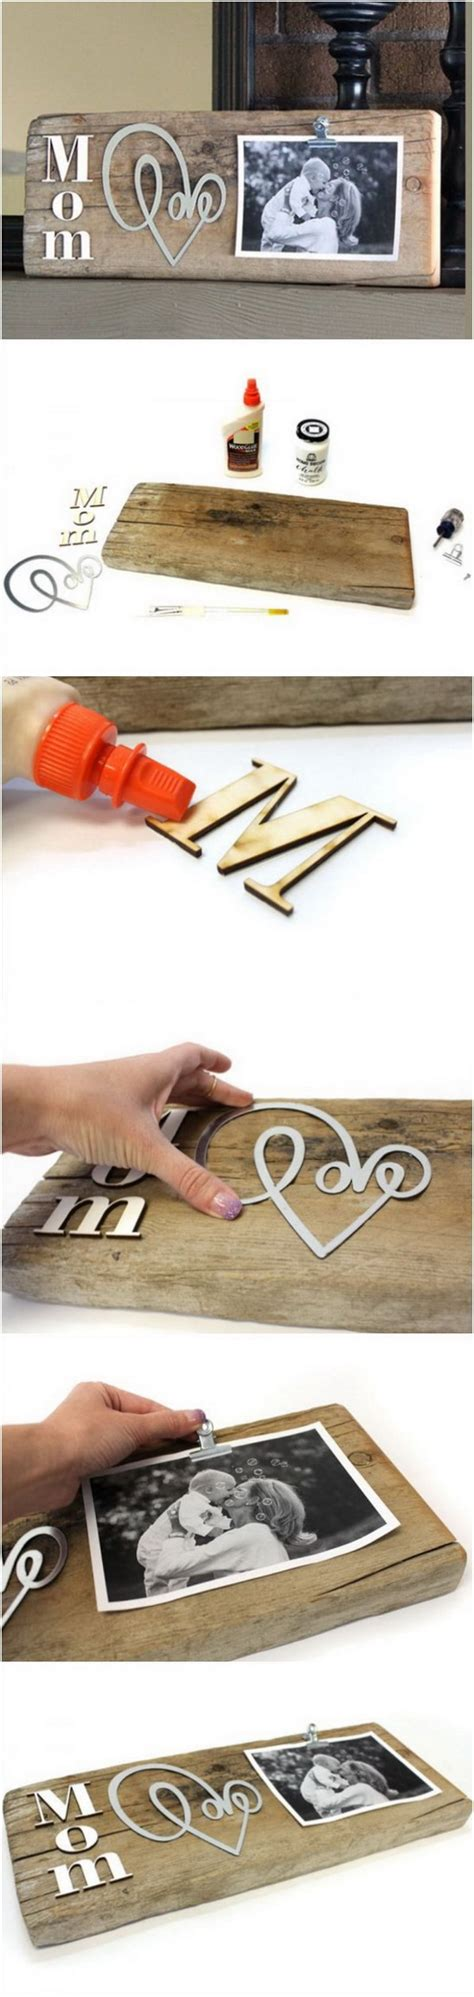 gift ideas mom 35 fabulous diy gift ideas for mom listing more